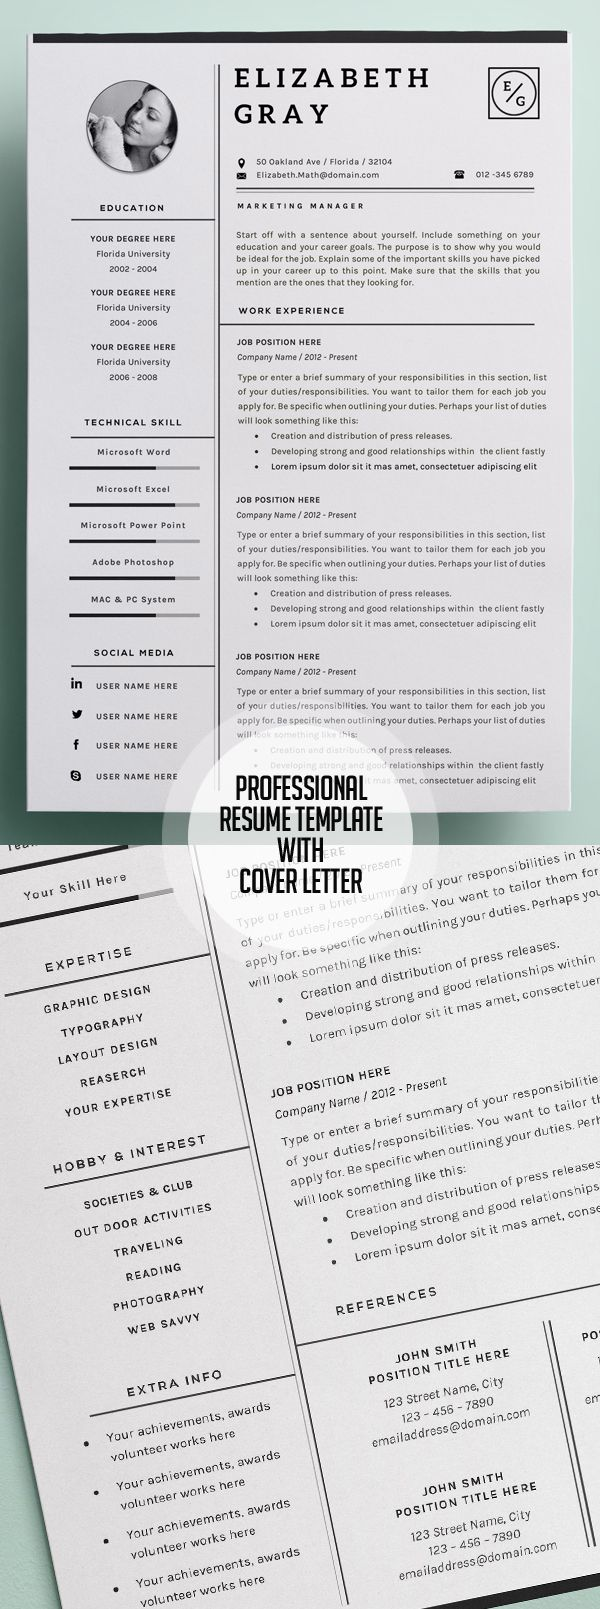 Picnictoimpeachus  Unique  Resume Ideas On Pinterest  Resume Resume Templates And  With Magnificent Professional And Modern Resume Template With Page Cover Cvtemplate With Amusing Michigan Talent Bank Resume Also Program Specialist Resume In Addition How To Send A Resume Through Email And Skills To Include In A Resume As Well As Occupational Therapy Resumes Additionally Entry Level Phlebotomy Resume From Pinterestcom With Picnictoimpeachus  Magnificent  Resume Ideas On Pinterest  Resume Resume Templates And  With Amusing Professional And Modern Resume Template With Page Cover Cvtemplate And Unique Michigan Talent Bank Resume Also Program Specialist Resume In Addition How To Send A Resume Through Email From Pinterestcom